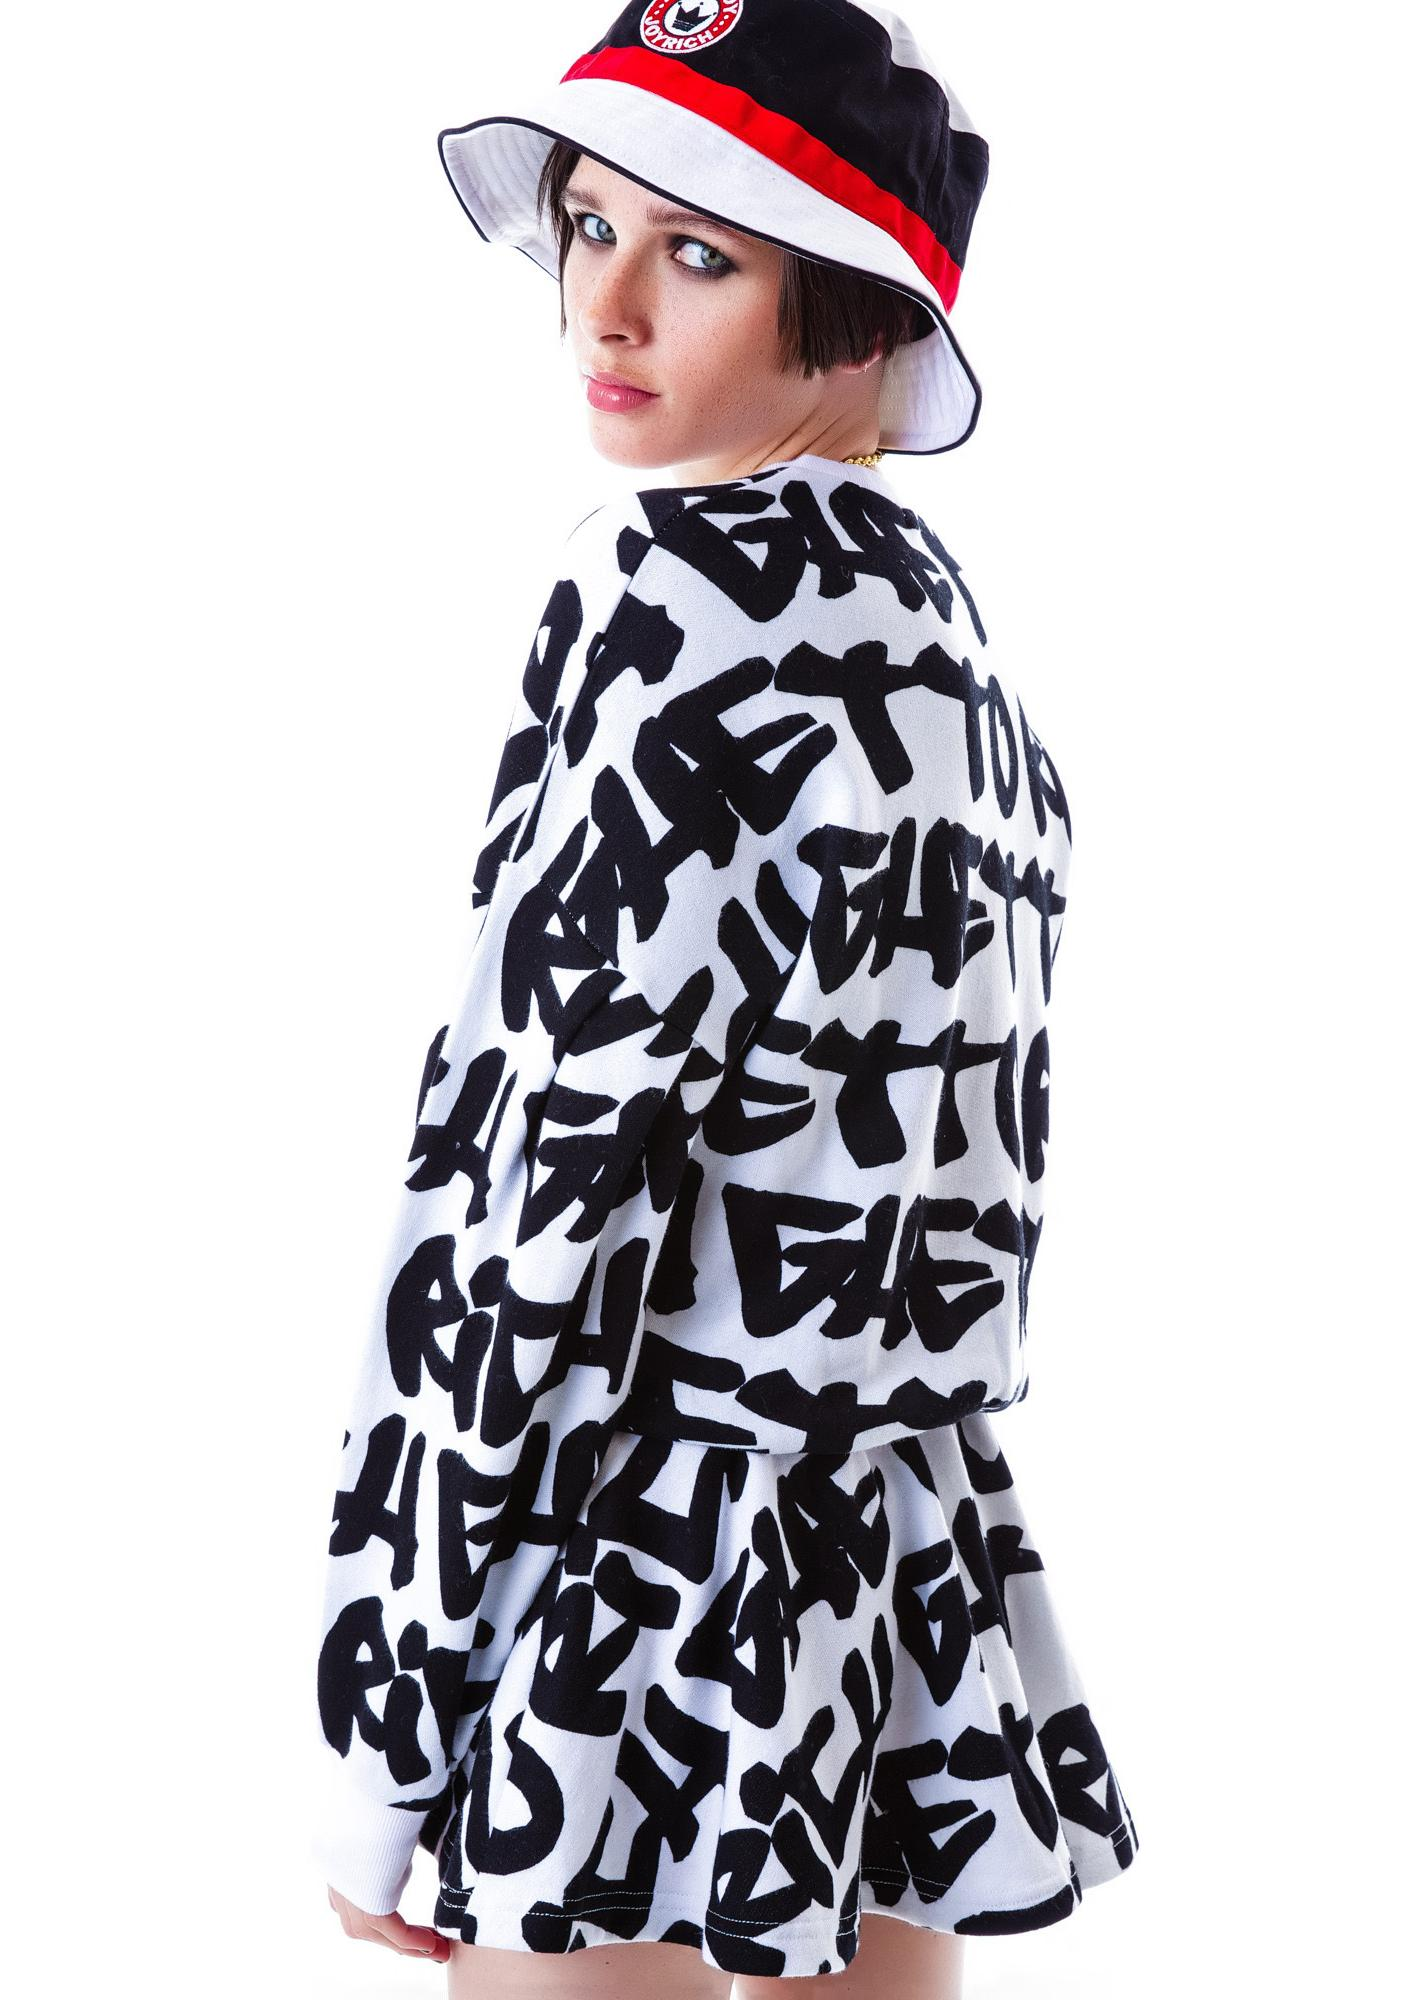 Joyrich Ghetto Graffiti Tunic